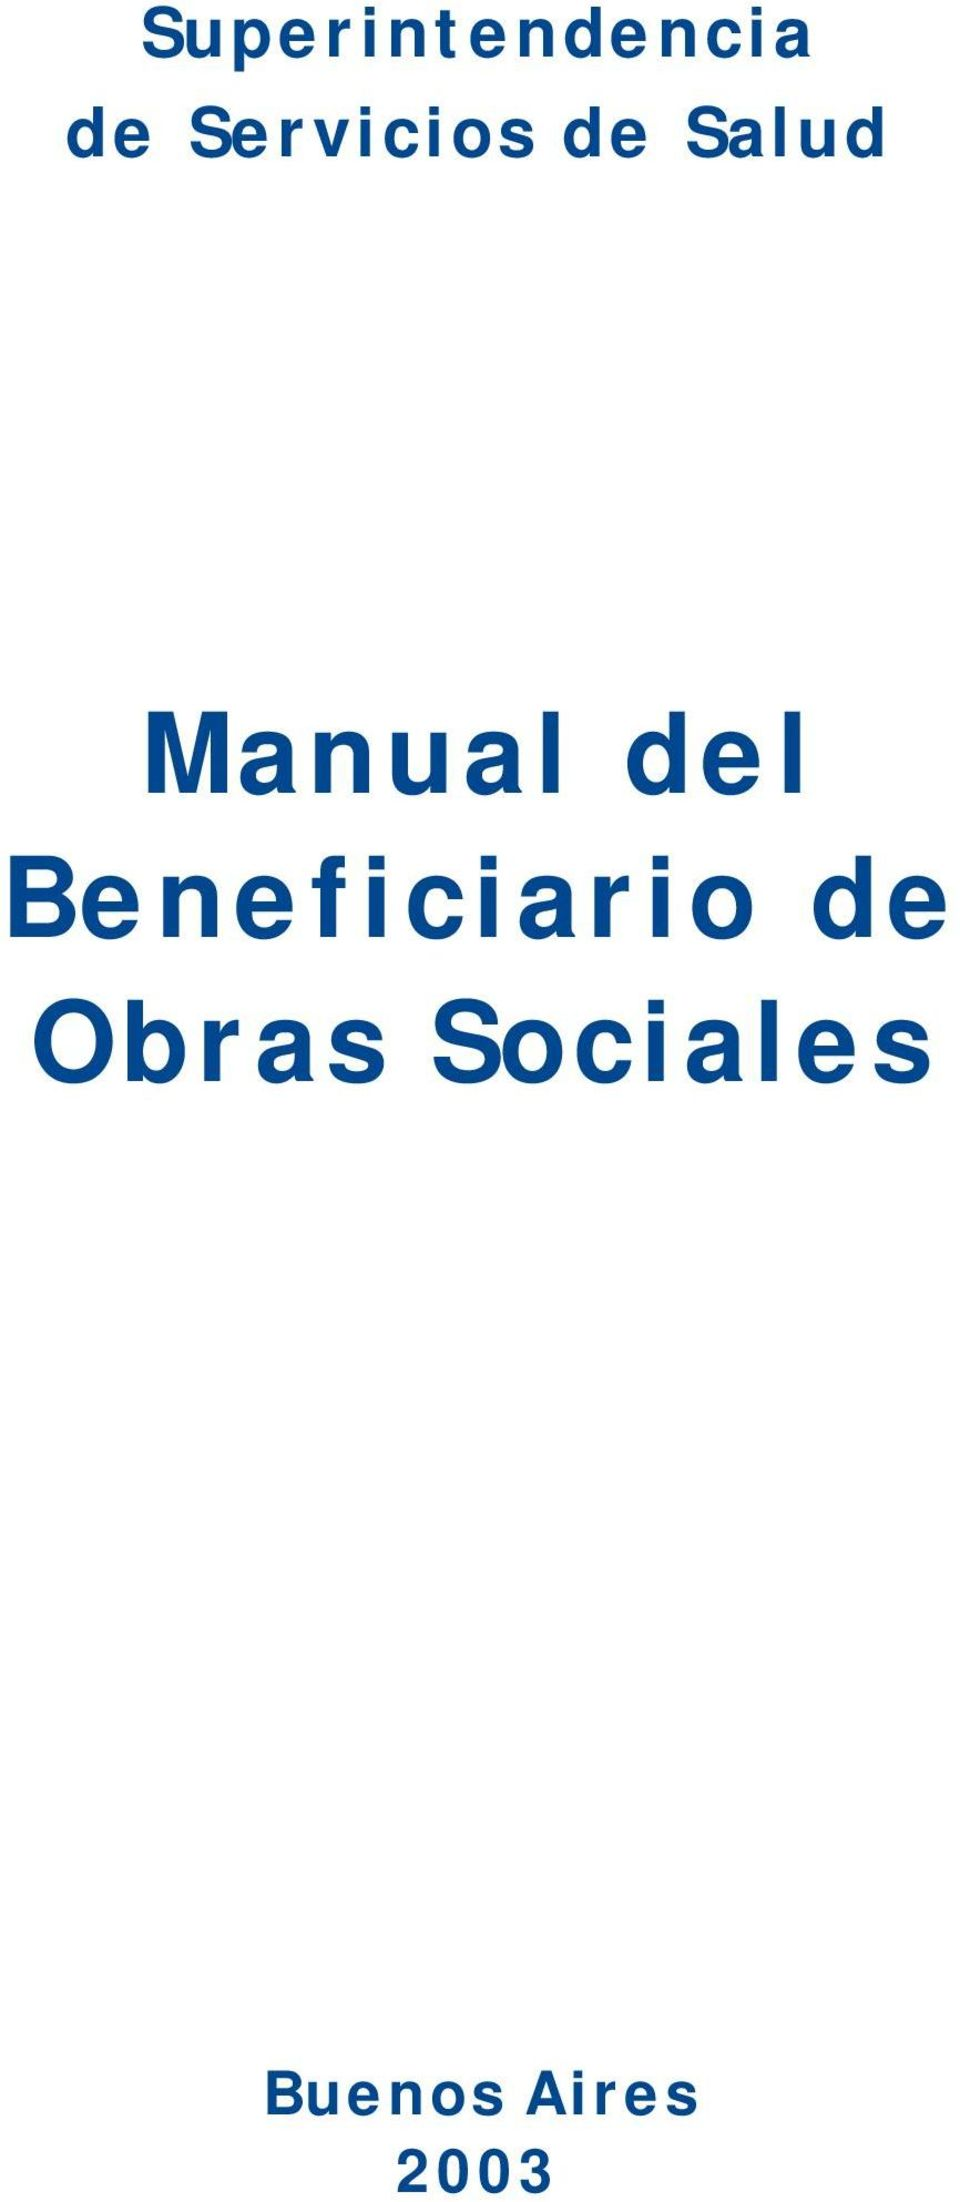 Manual del Beneficiario